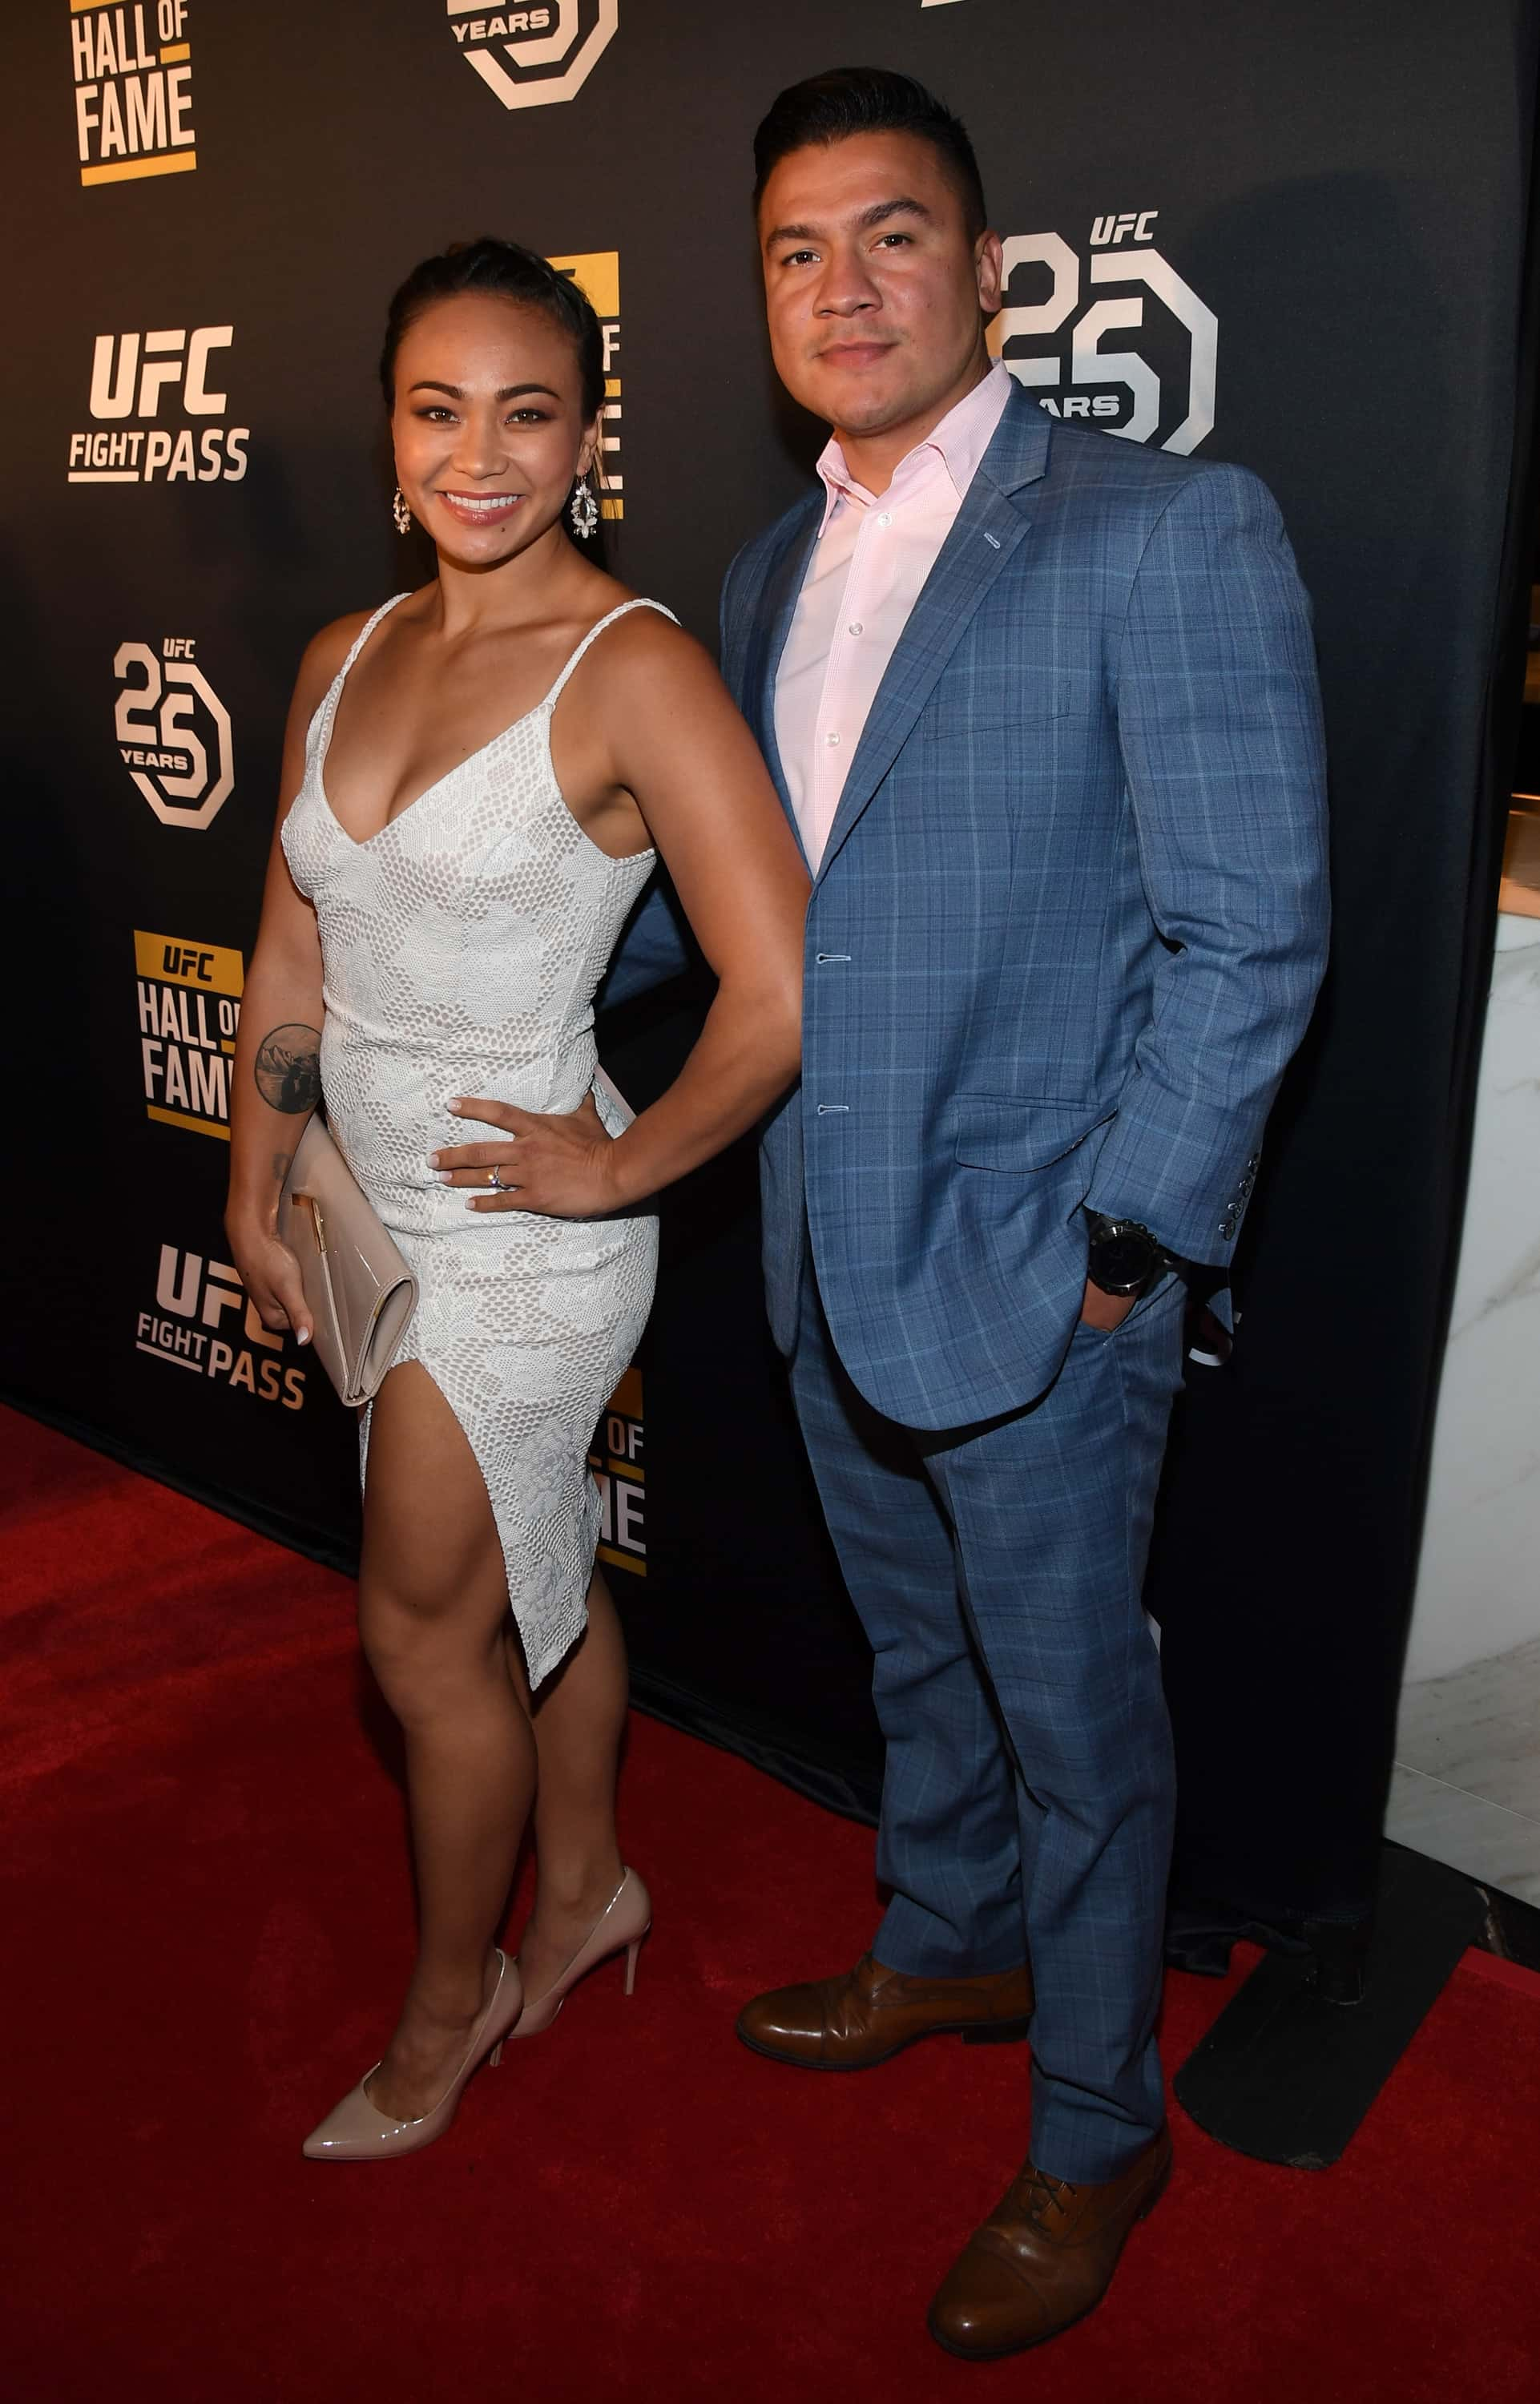 Ufc 2020 John Wood To Joshua Gomez Meet Top 10 Heartthrobs In The Lives Of Female Fighters Meaww Michelle waterson and husband joshua gomez impressed at the amalie arena. ufc 2020 john wood to joshua gomez